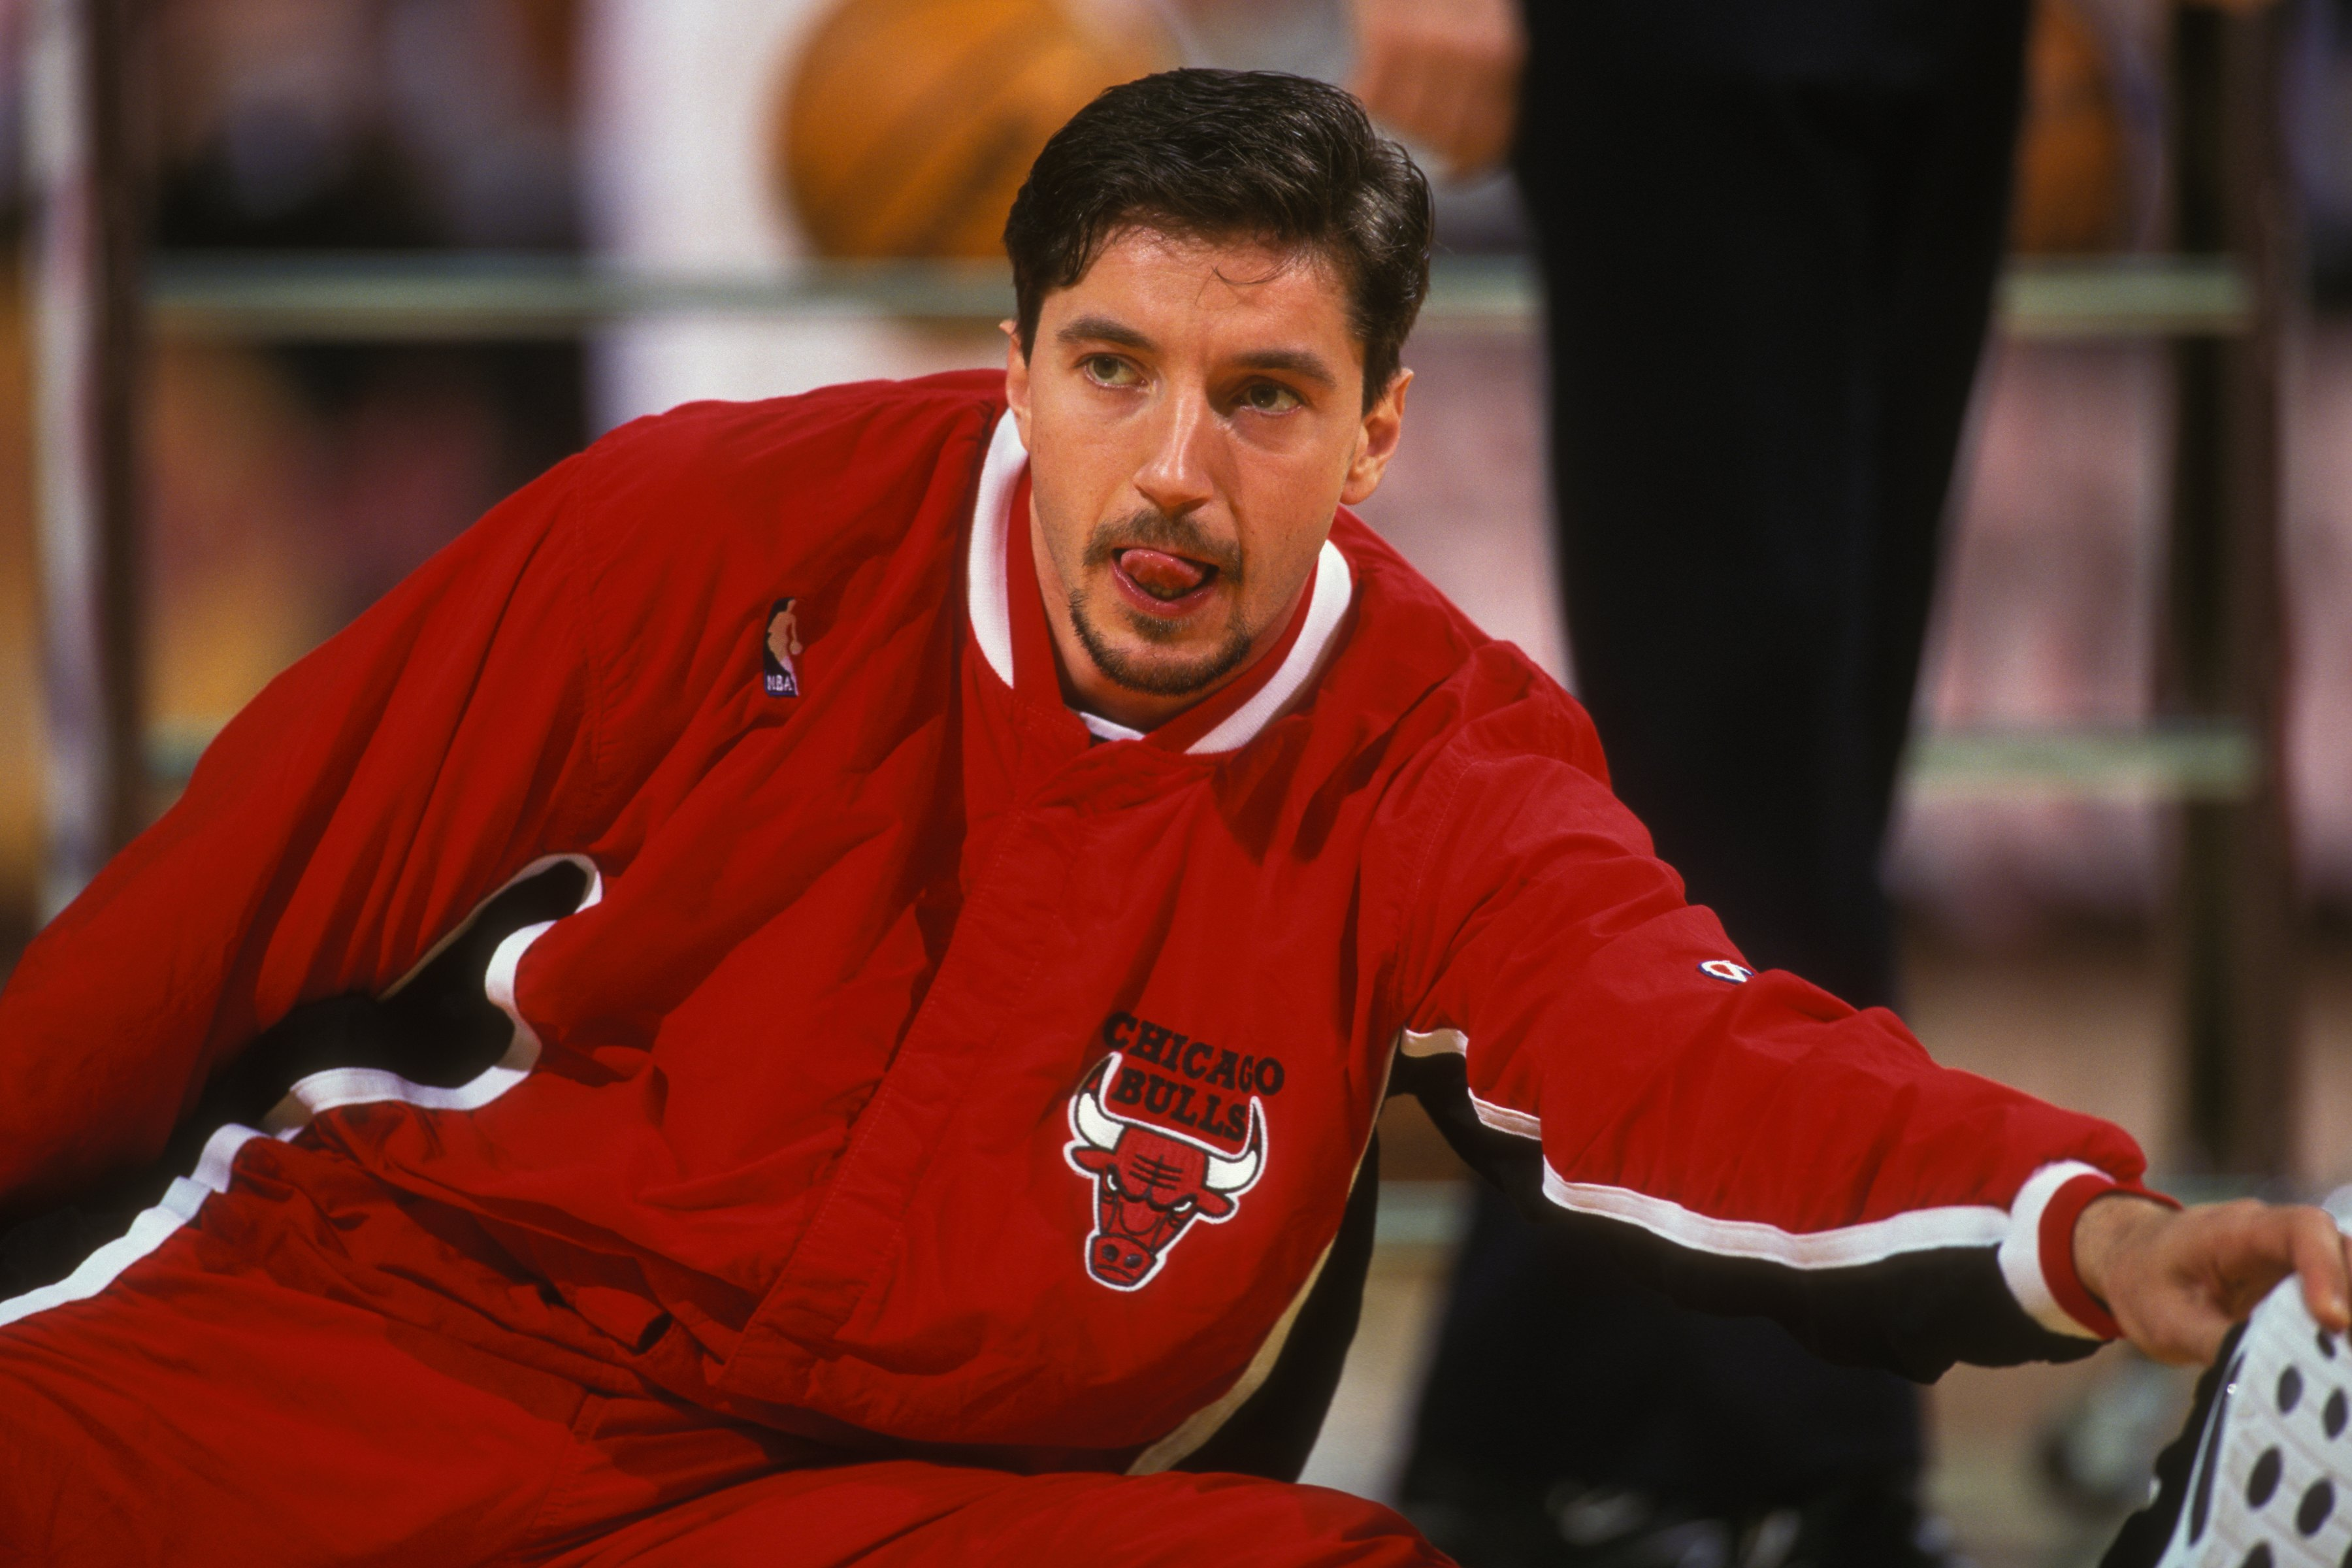 Chicago Bulls star Tony Kukoc